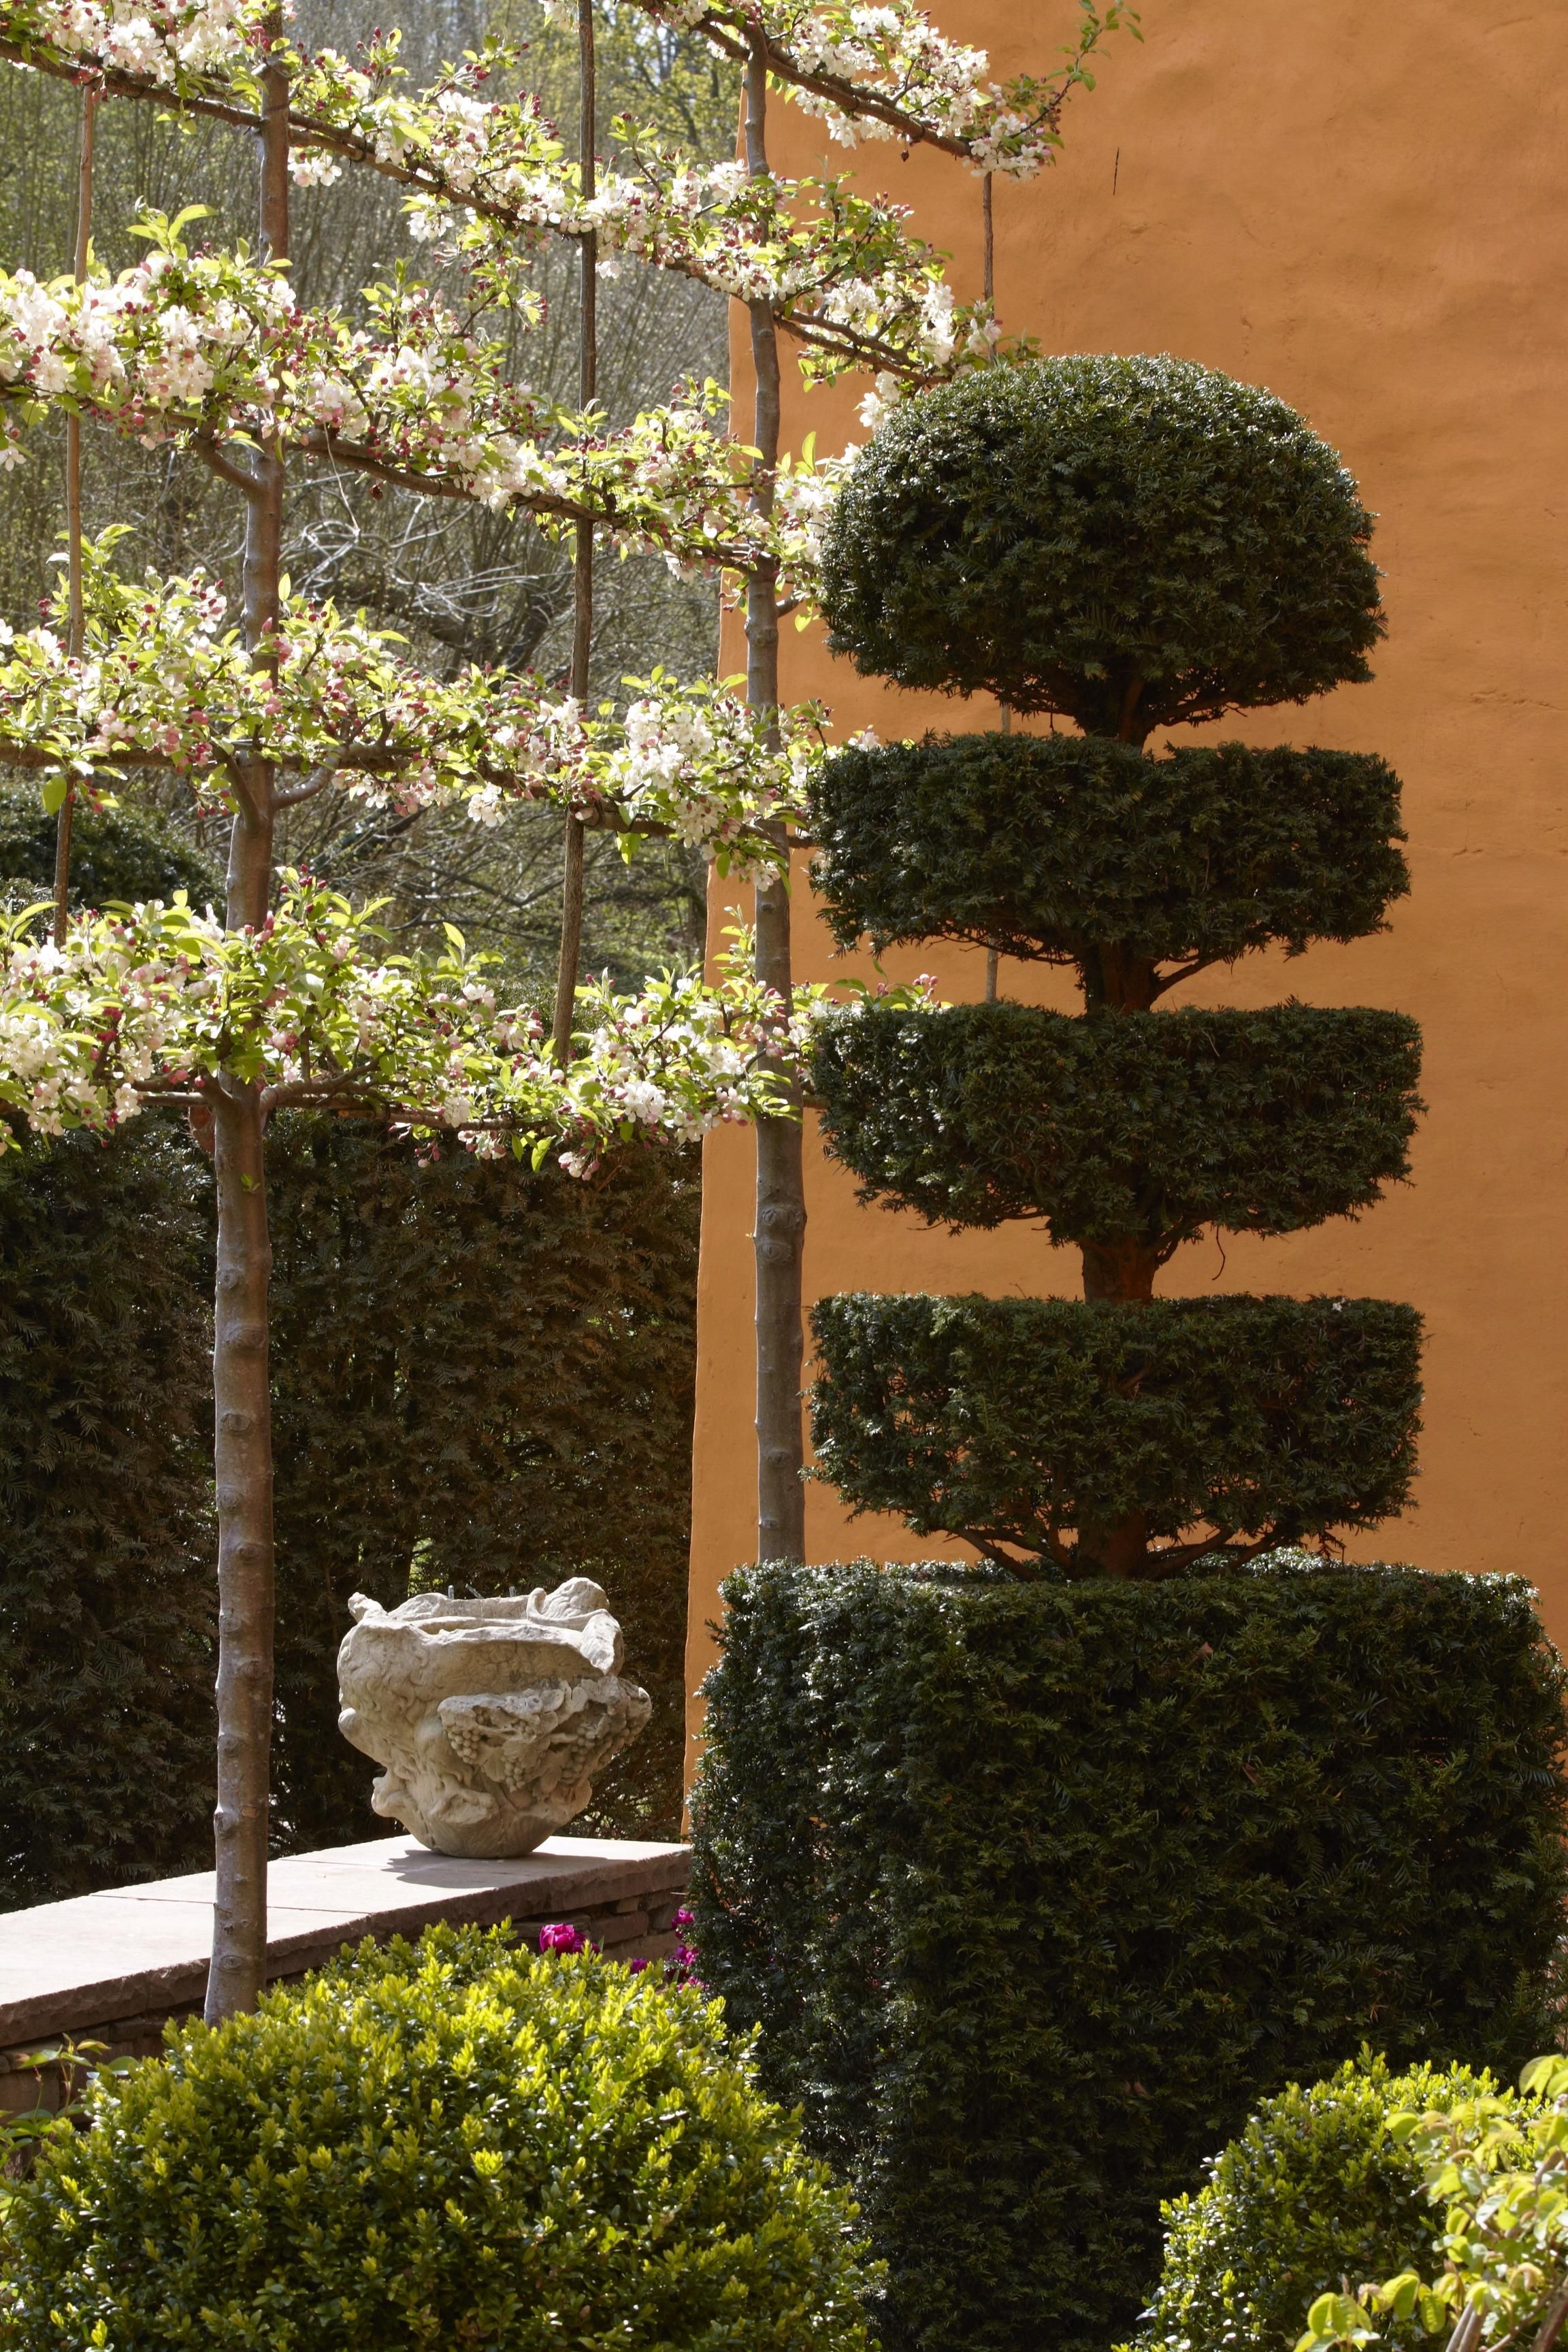 Landscaping 101: Pleached Trees | Pinterest | Topiary, Gardens and ...